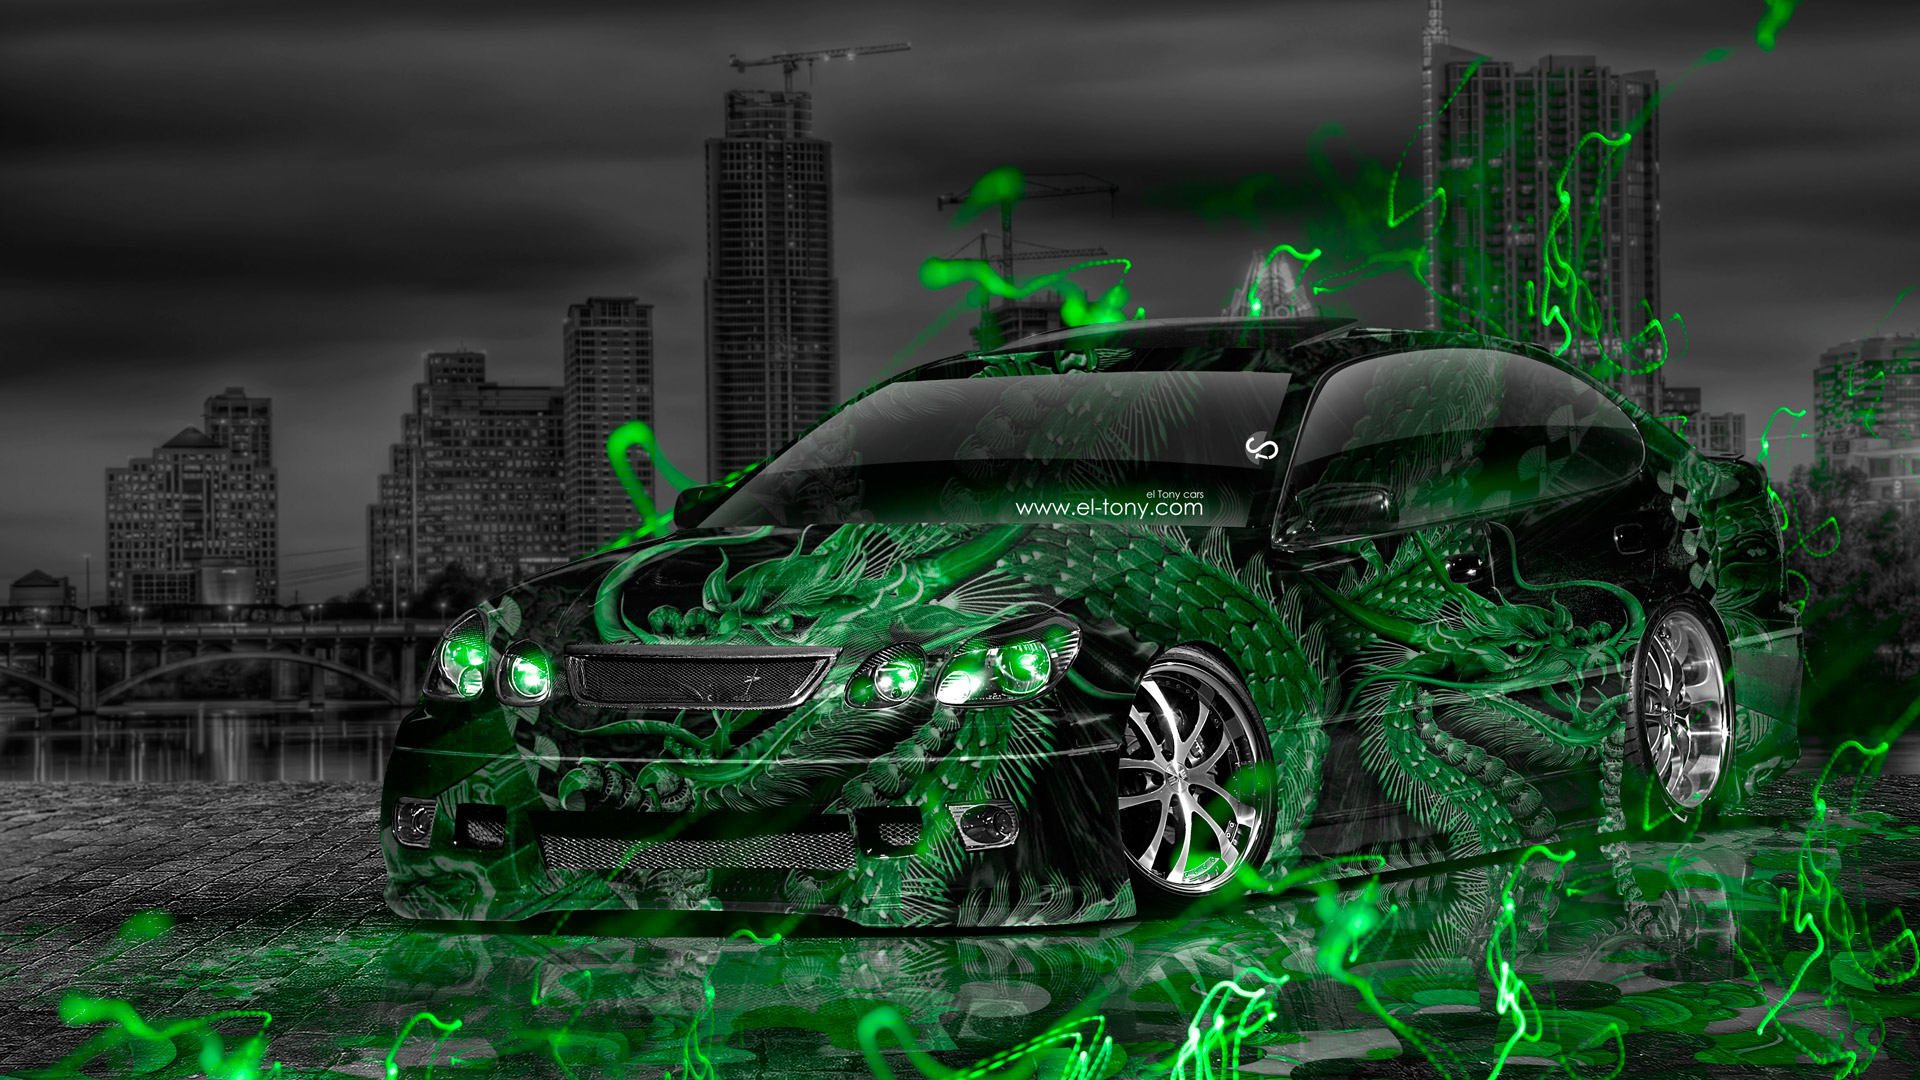 Toyota-Aristo-JDM-Tuning-Energy-Dragon-Aerography-City-Car-2015-Green-Neon-Effects-HD-Wallpapers-design-by-Tony-Kokhan-www.el-tony.com-image